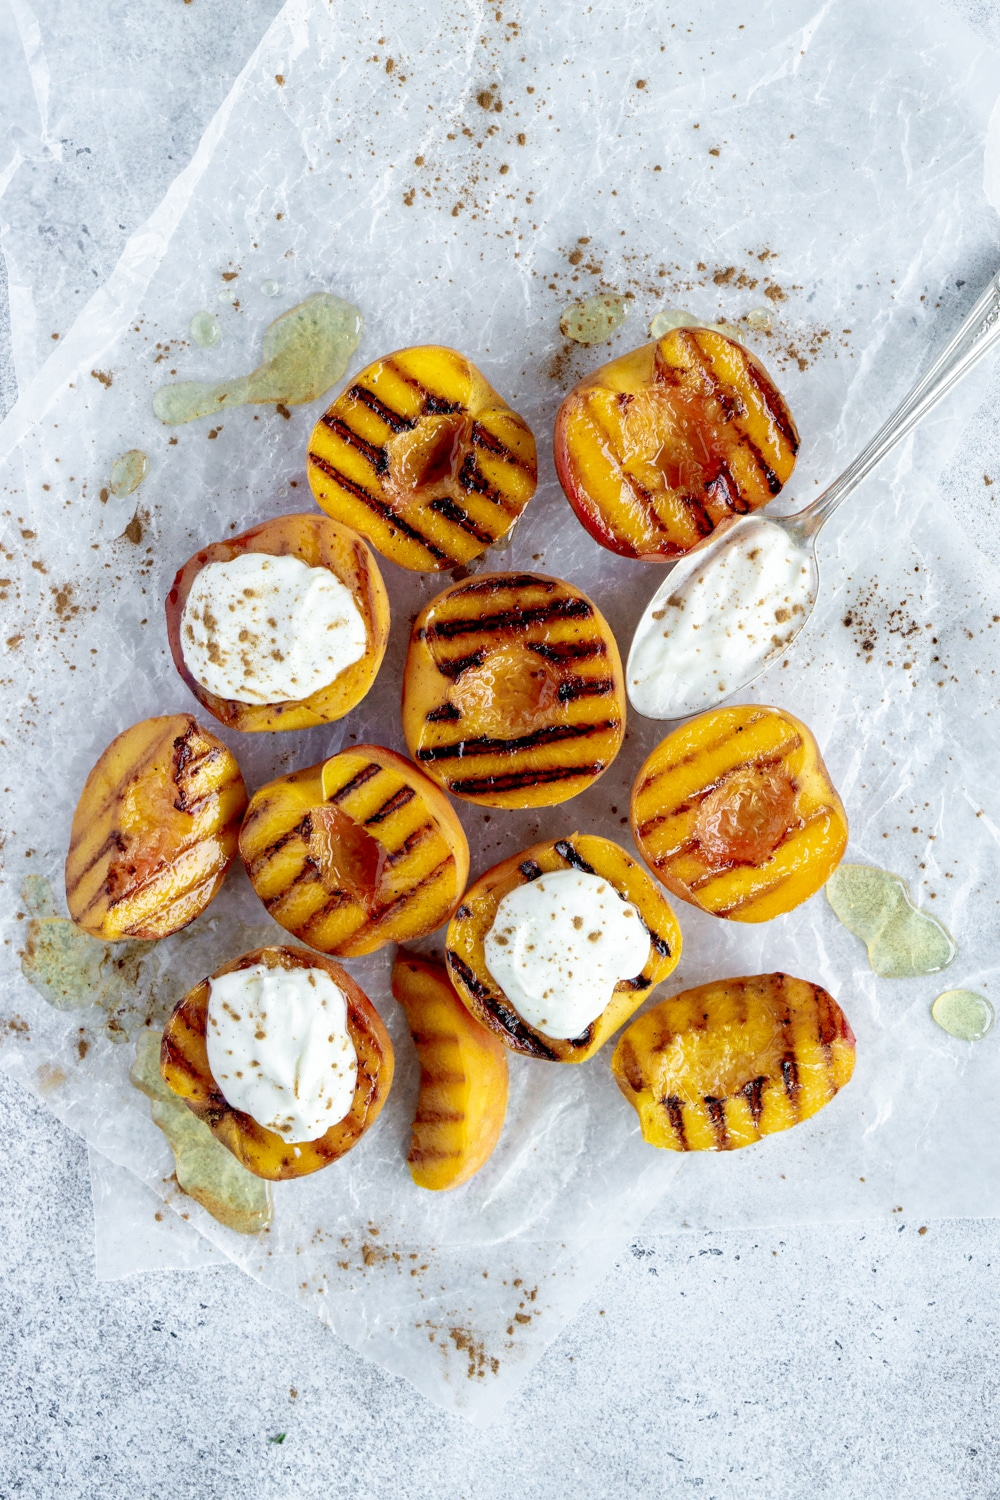 Cluster of grilled peaches with topped with ricotta and a spoon